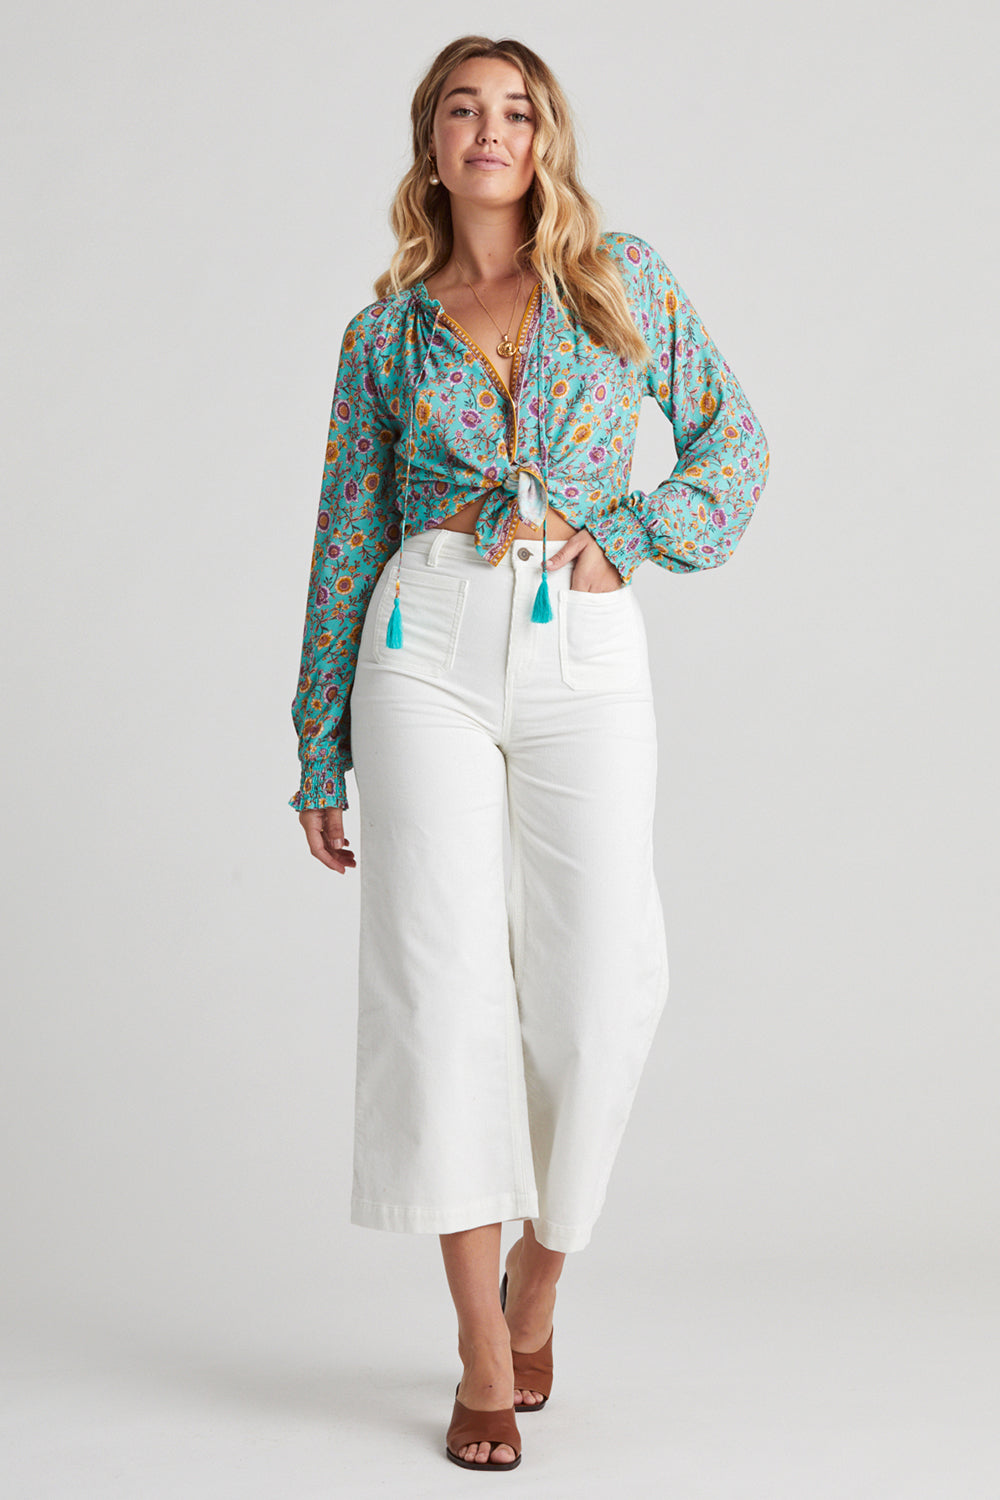 Bijoux Blouse in Turquoise